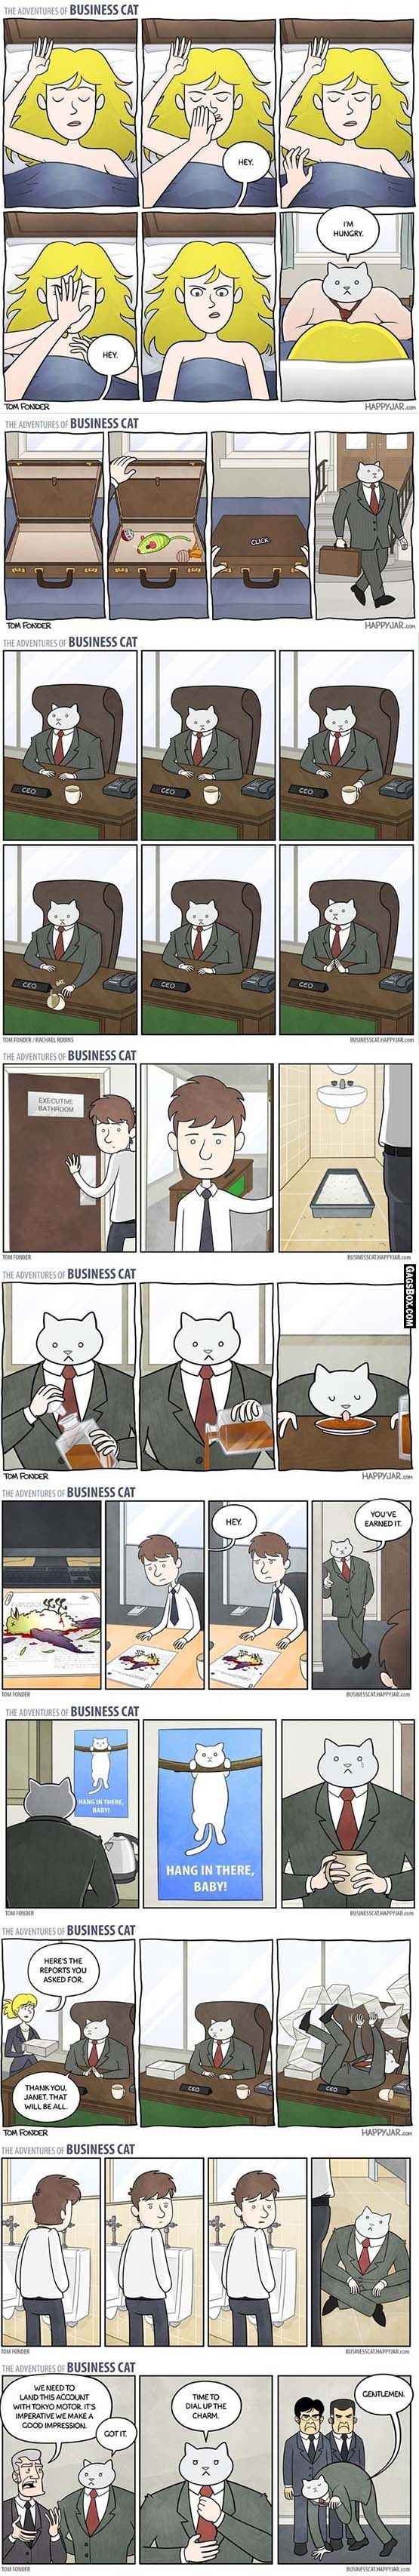 Business Cat Compilation(ฅ>ω<*ฅ)